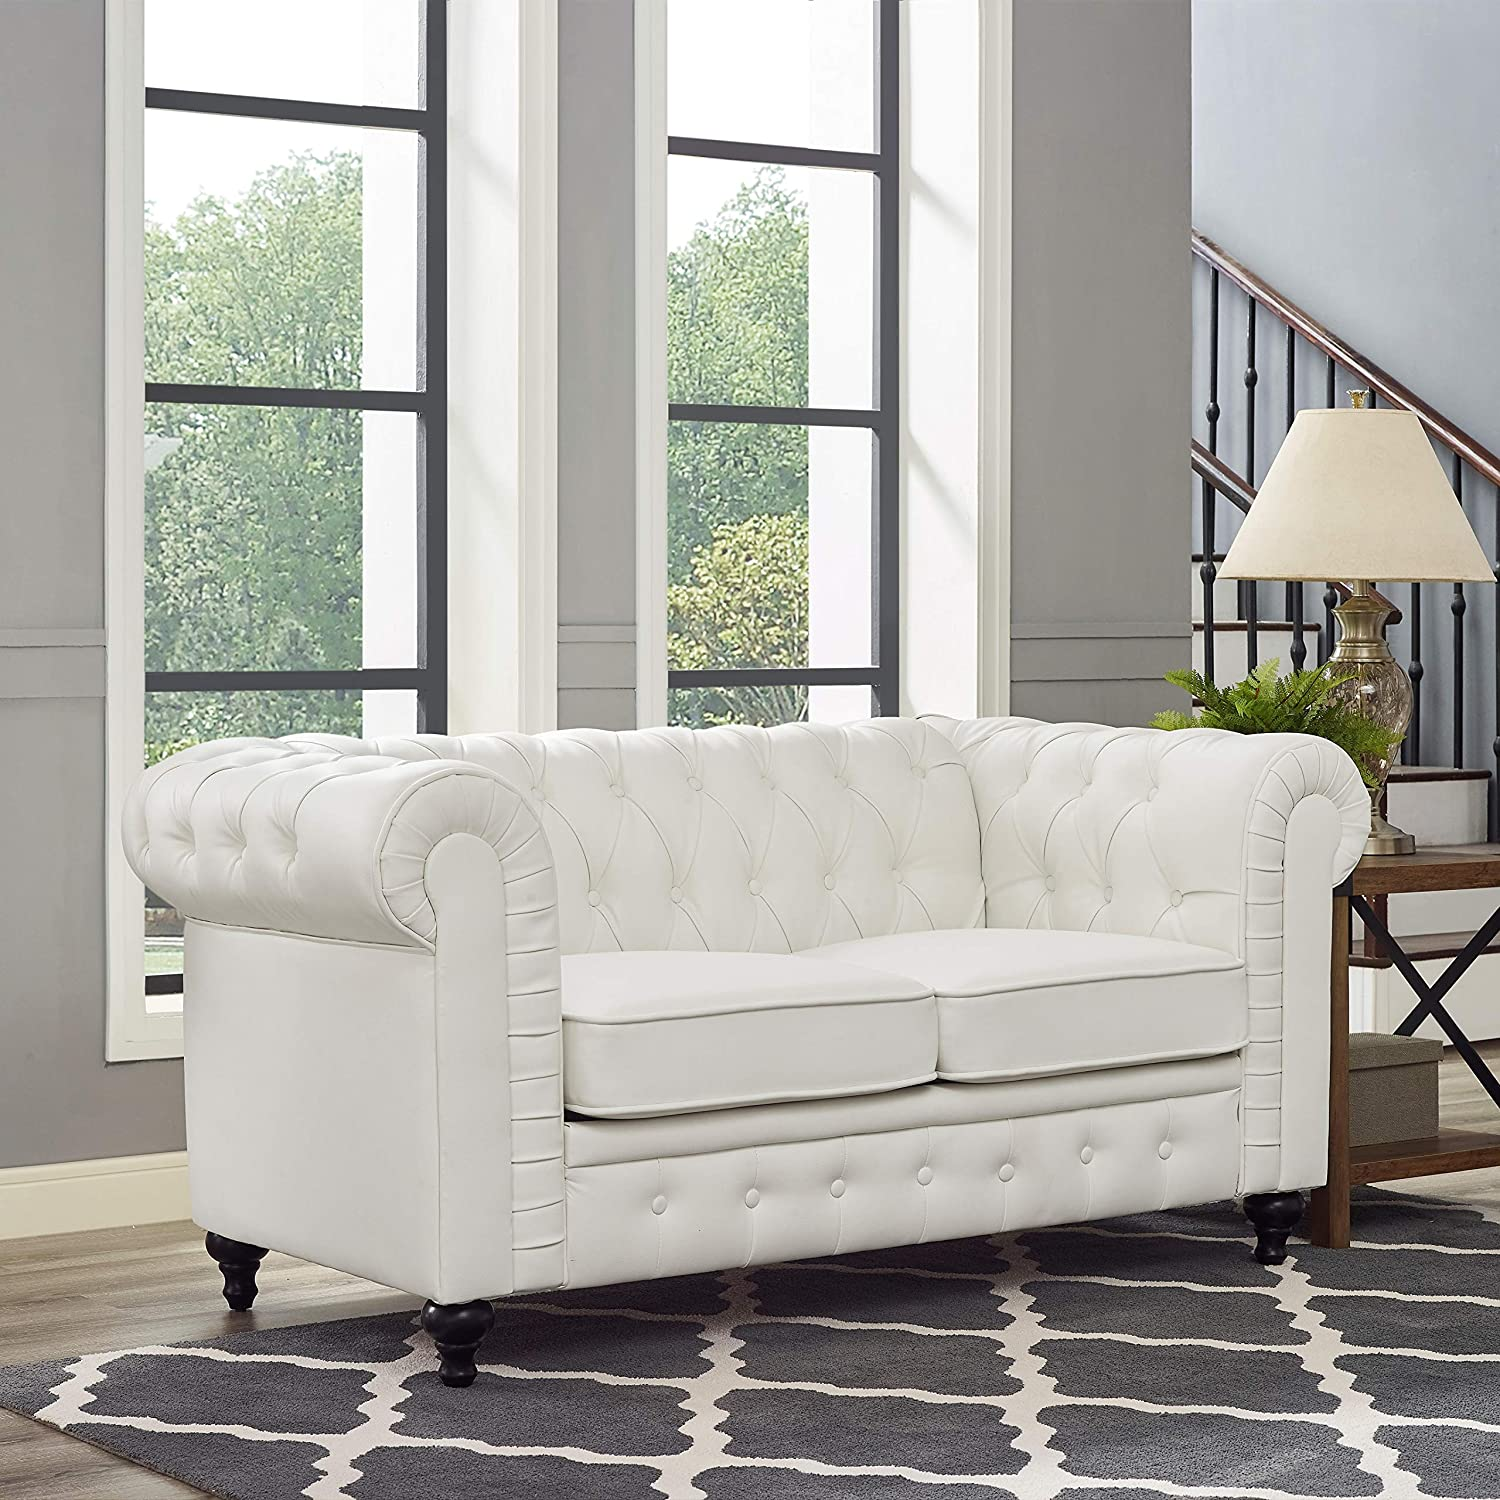 Naomi Home Emery Chesterfield Love Seat White